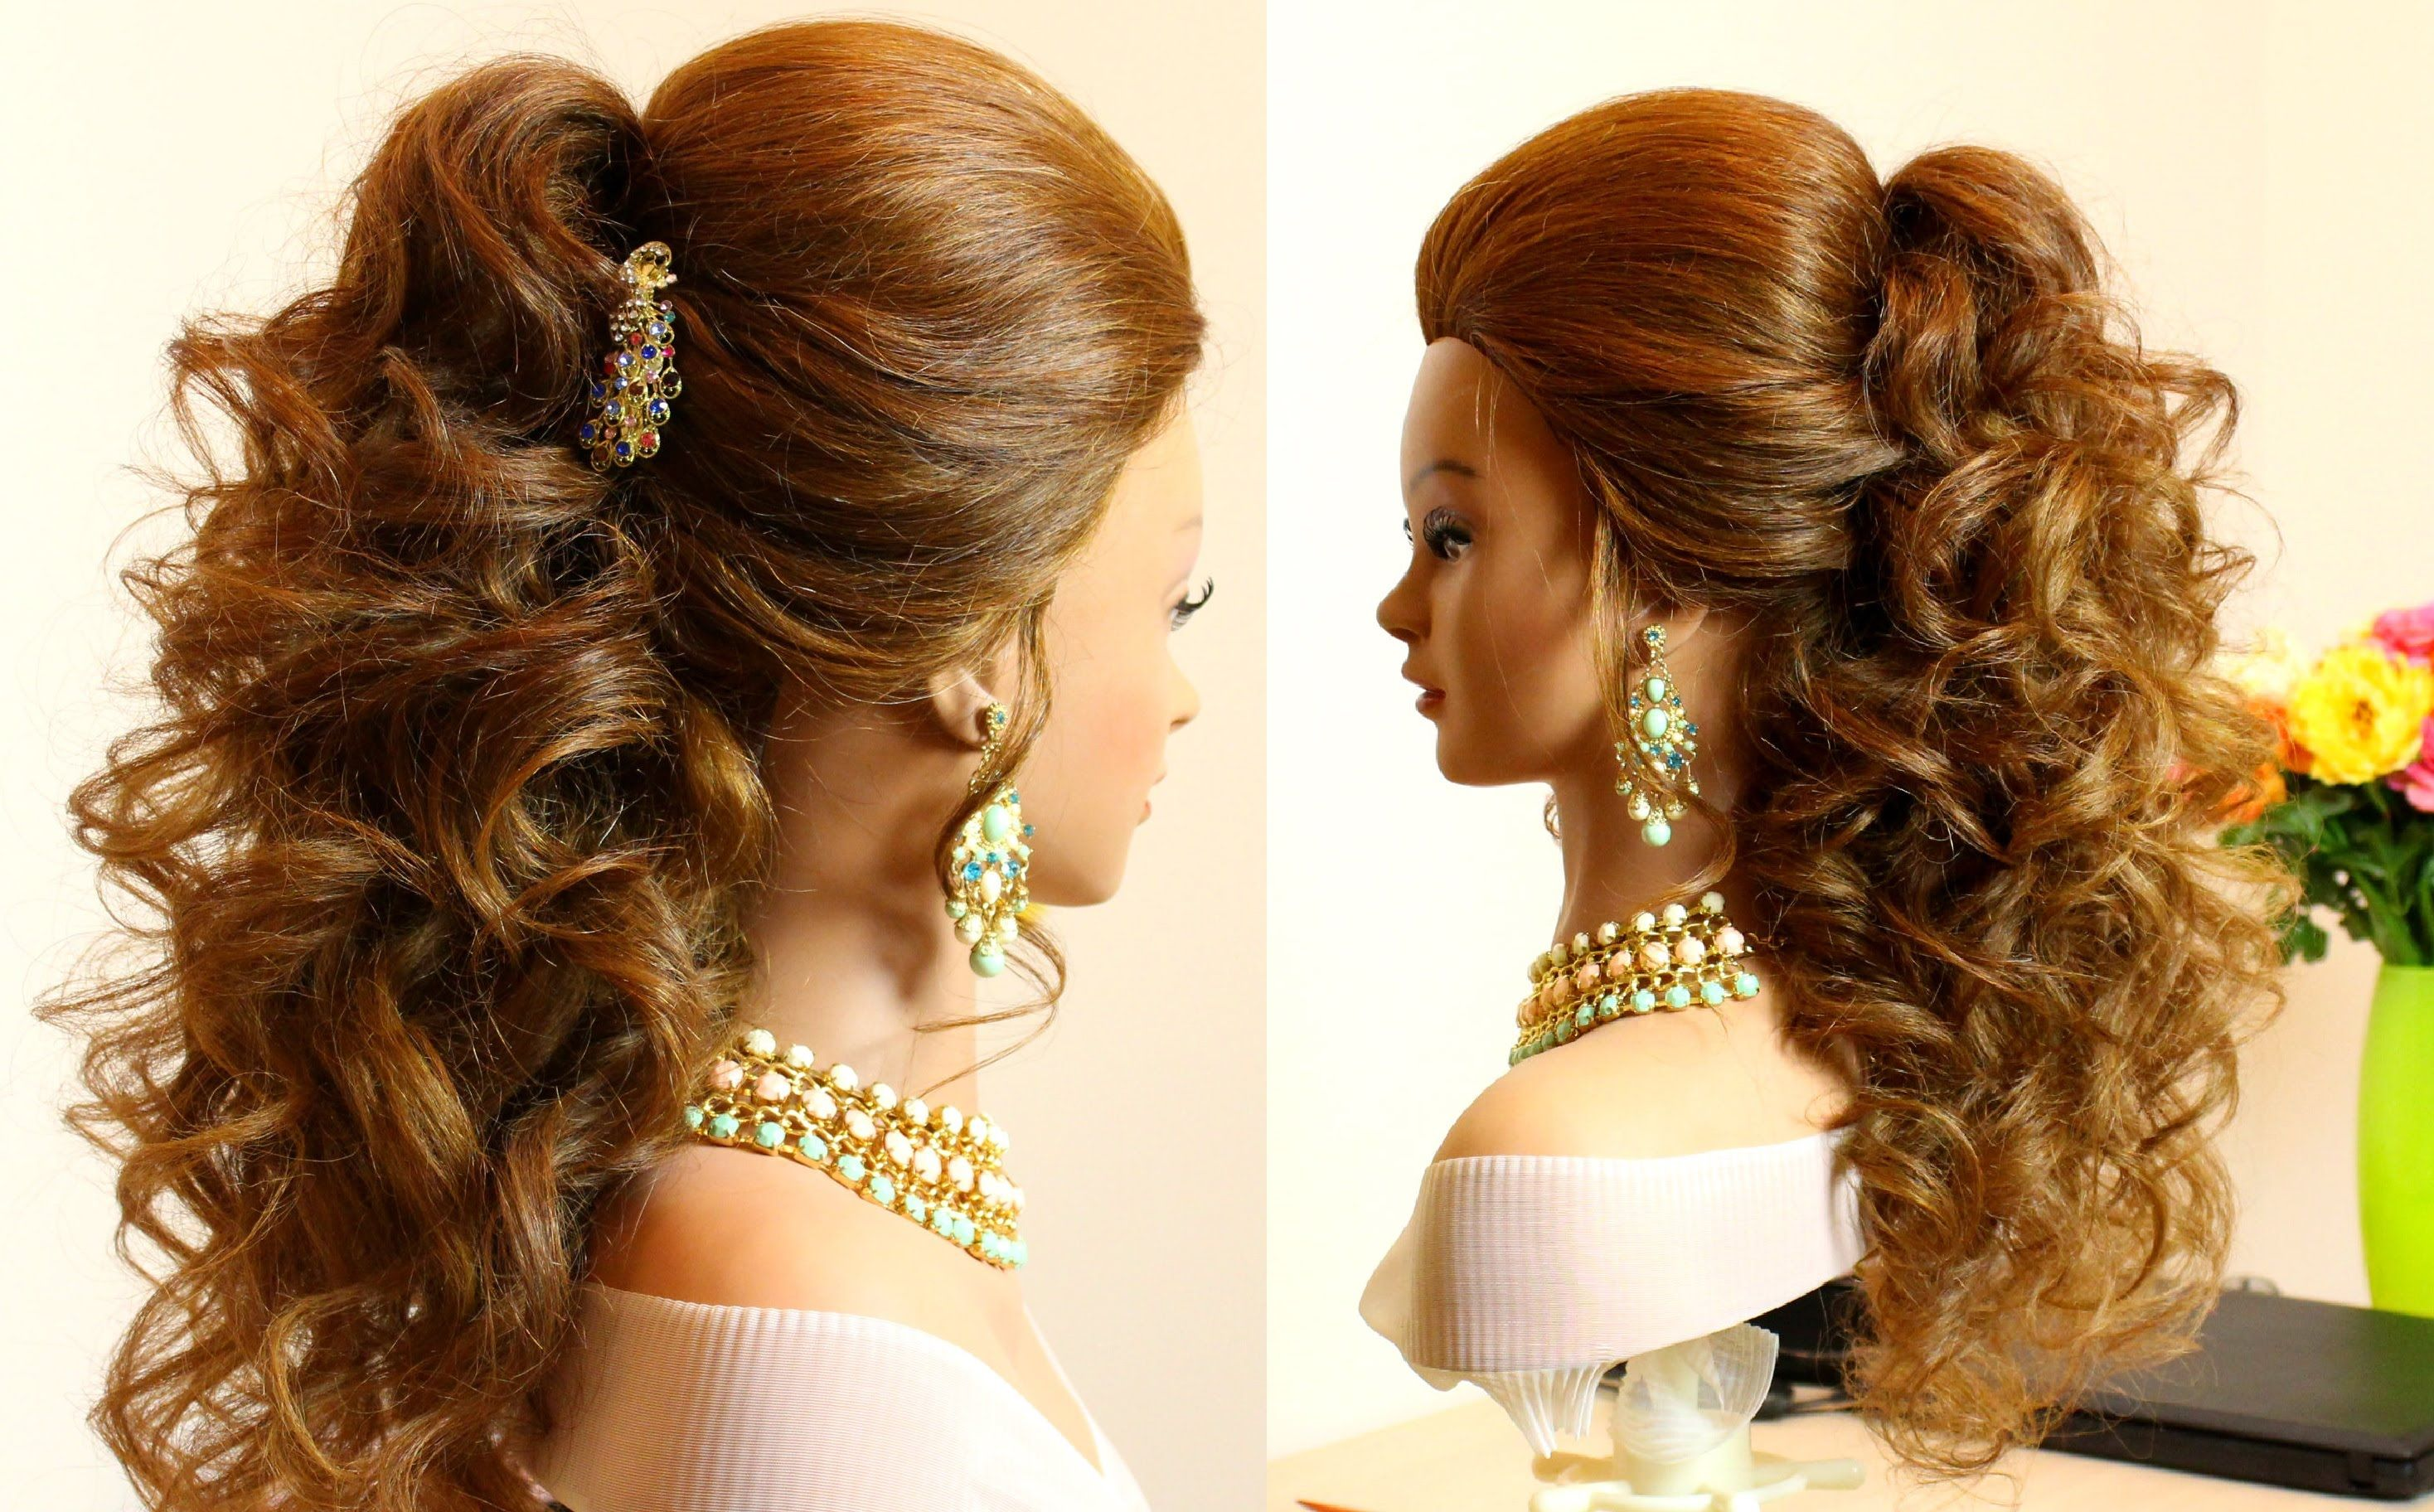 Hairstyles for curly hair prom hairstyles for curly hair